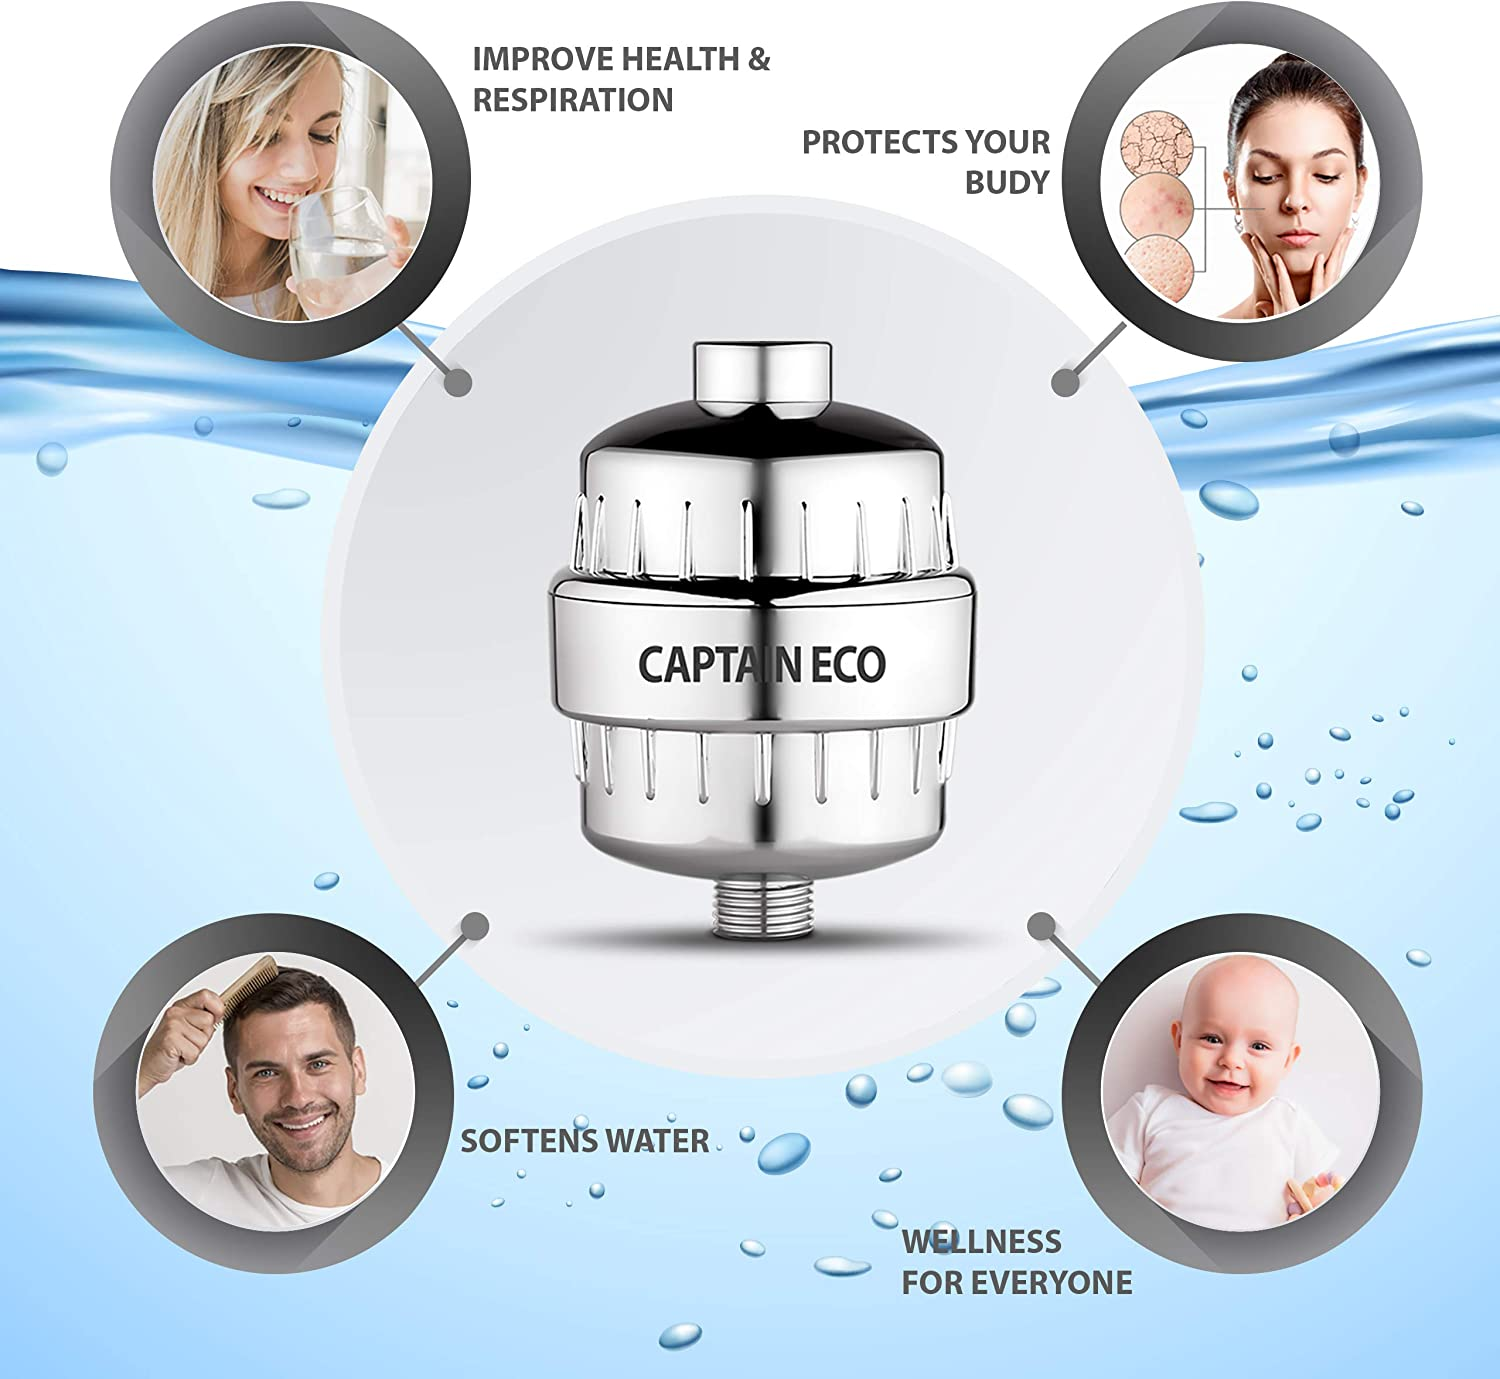 Captain Eco Shower Head Filter features